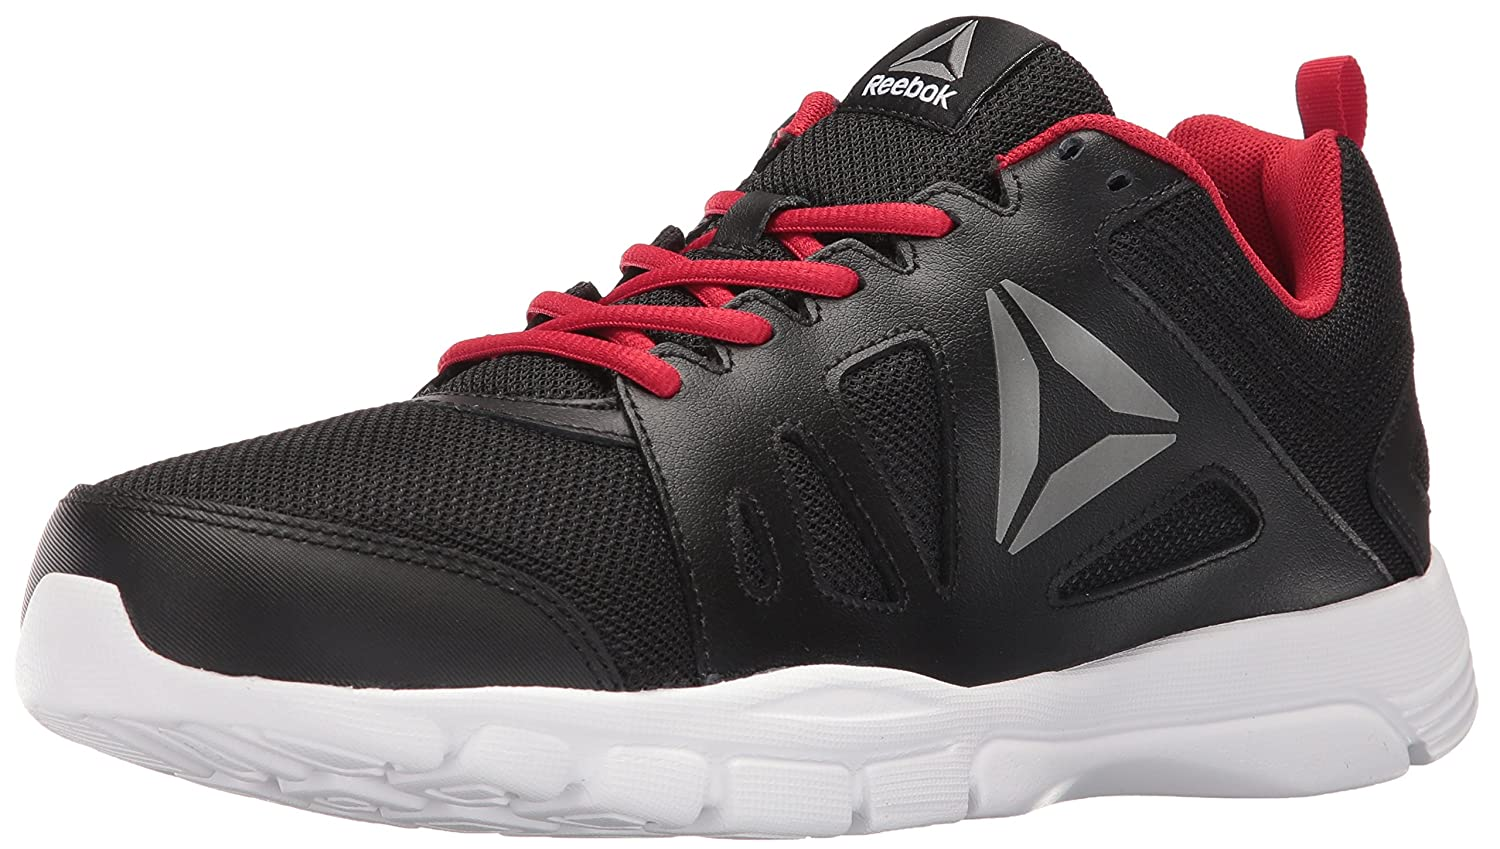 Reebok Men's Trainfusion Nine 2.0 L MT Running Shoe B01DN4COE4 8 D(M) US|Black/Excellent Red/Pewter/White